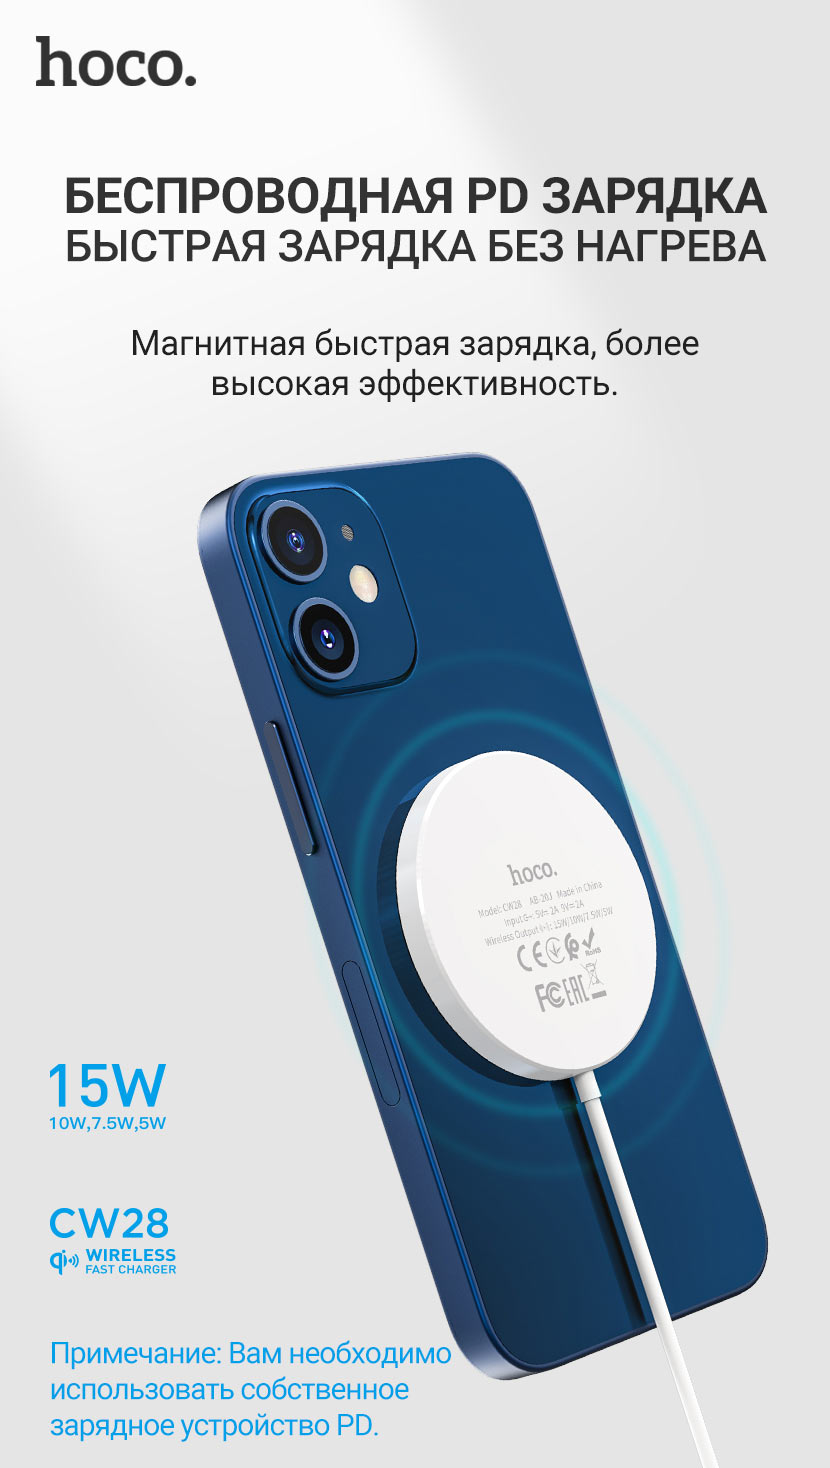 hoco news cw28 original series magnetic wireless fast charger pd ru